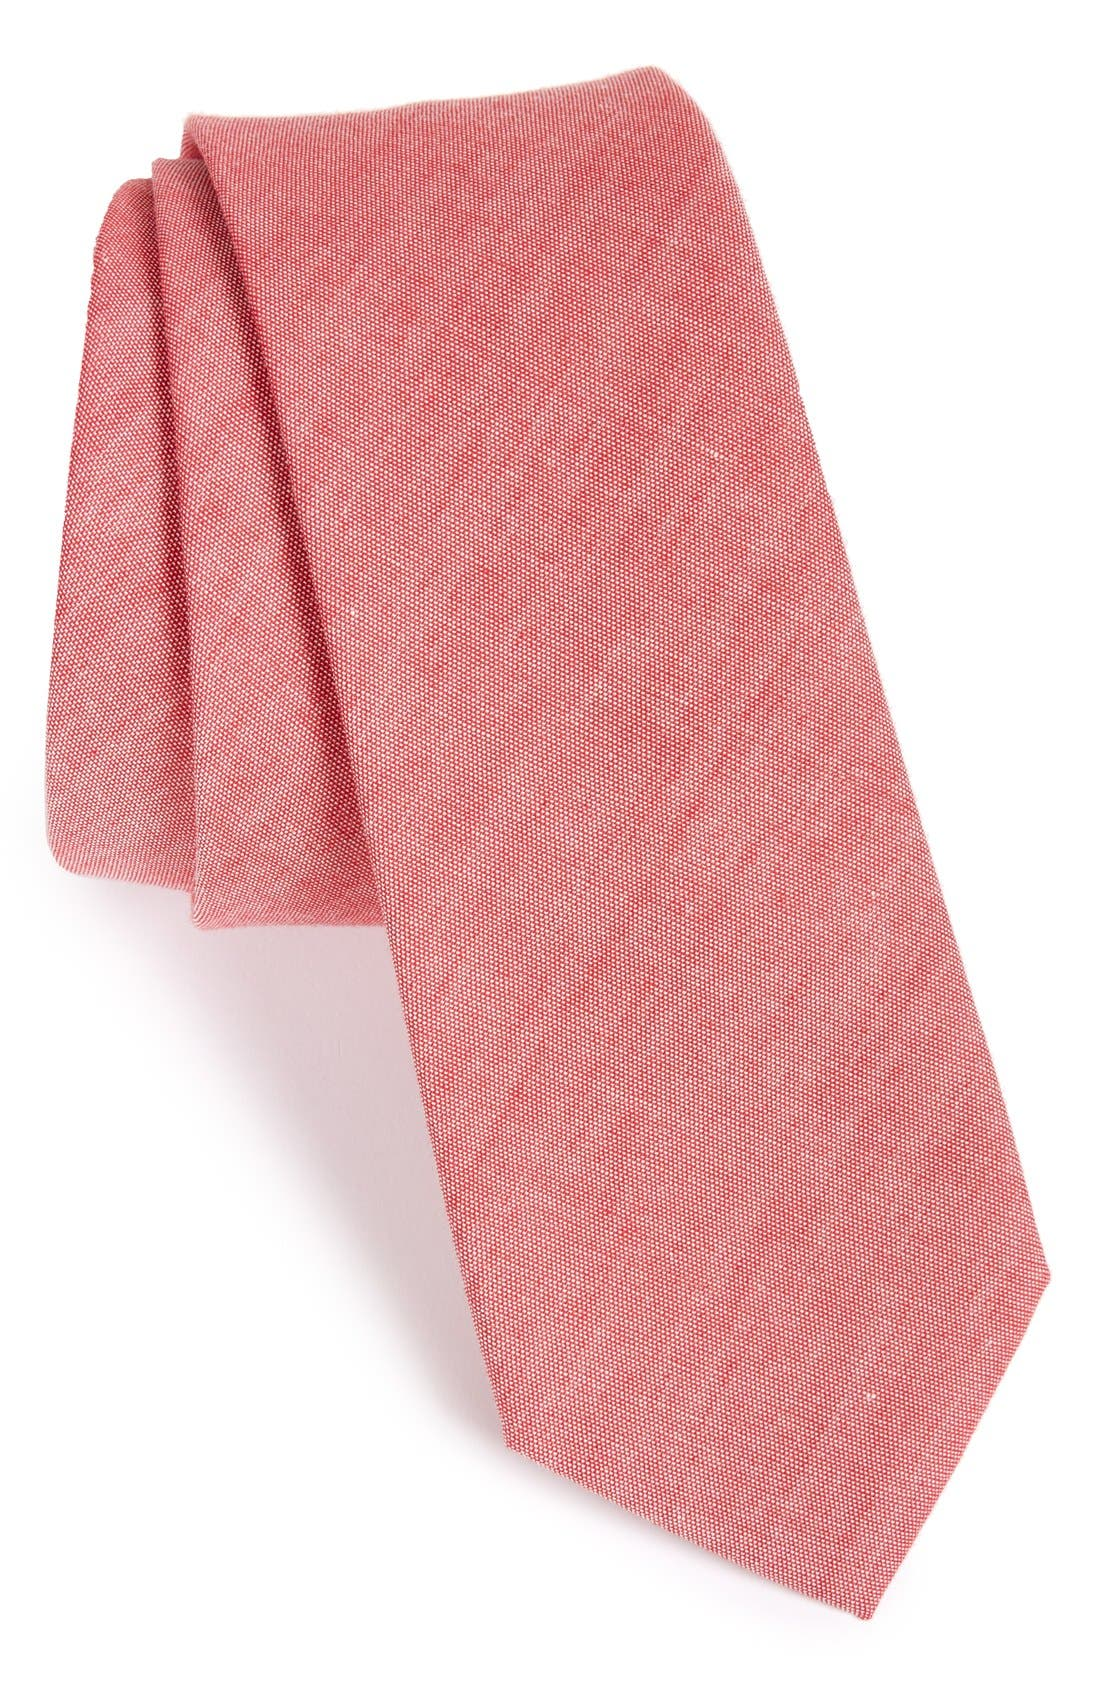 The Tie Bar Cotton Tie